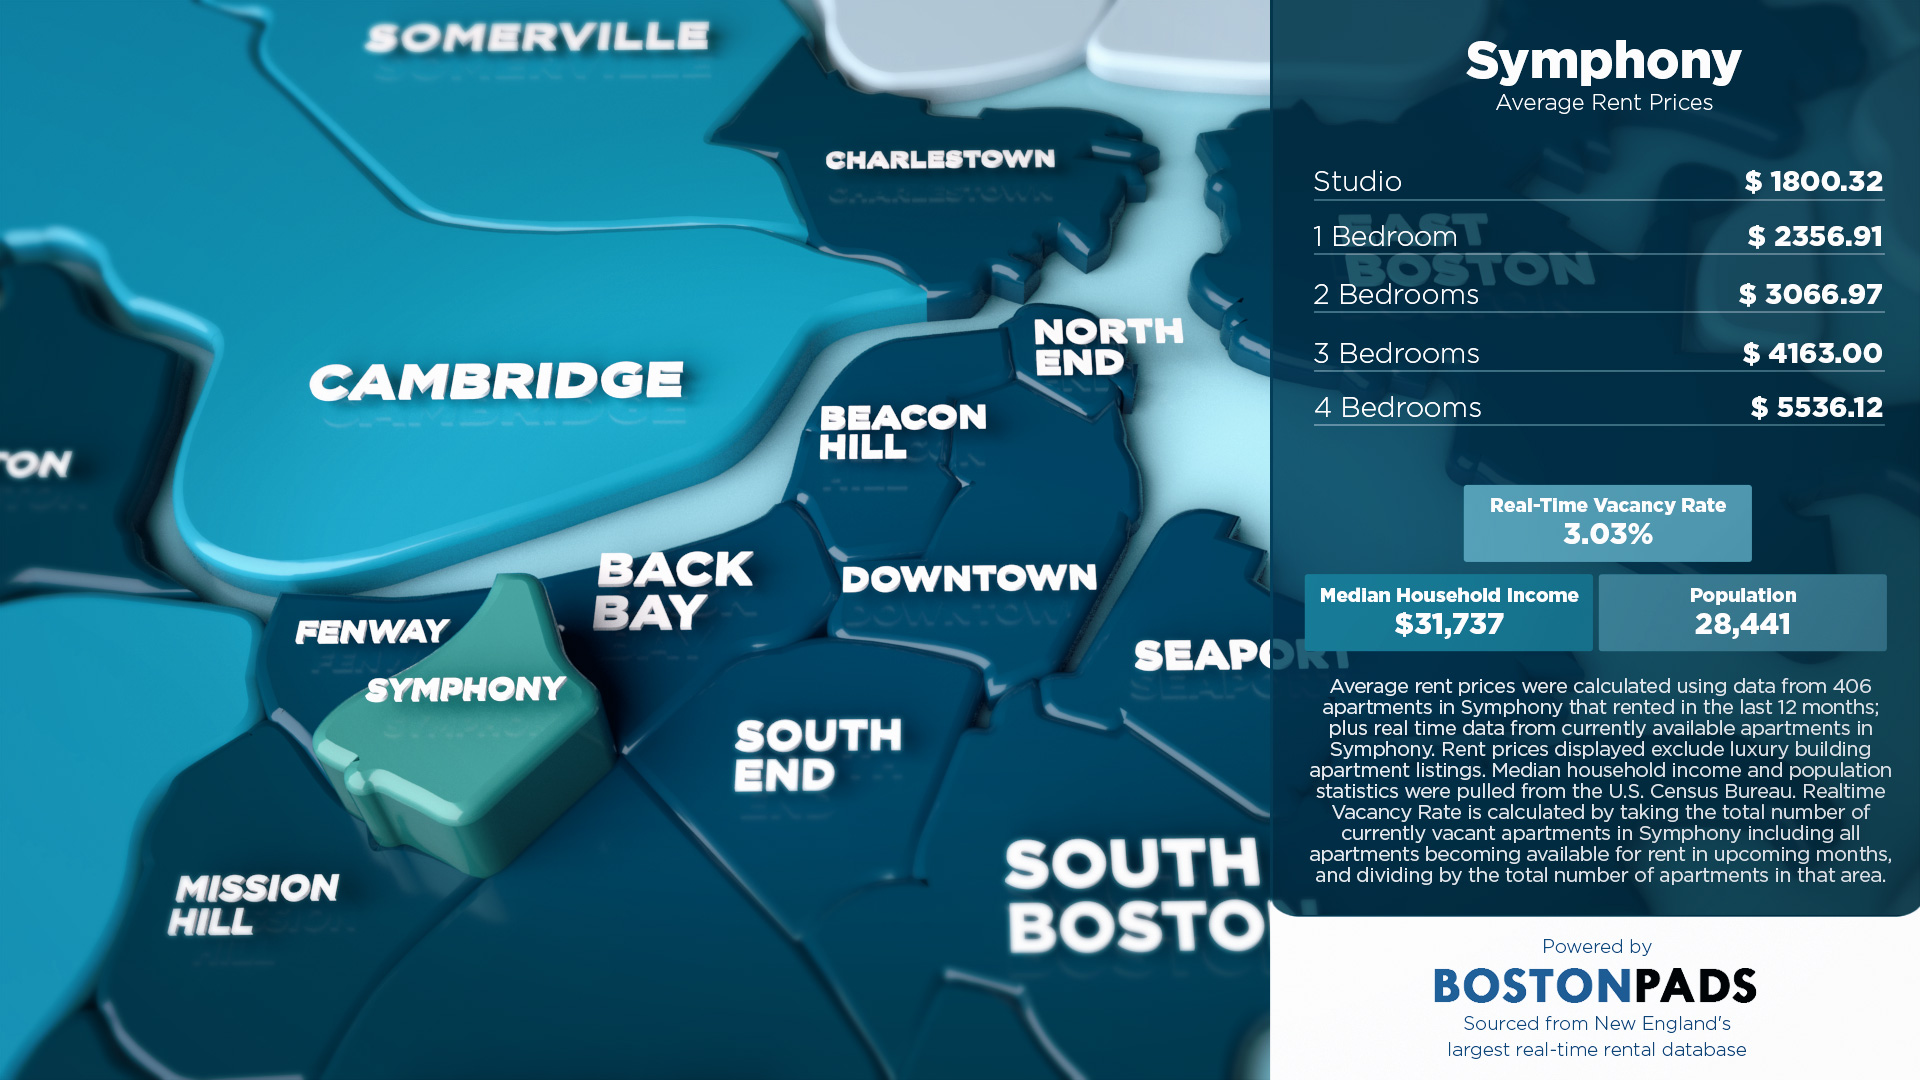 Average Rent Prices in Symphony Boston